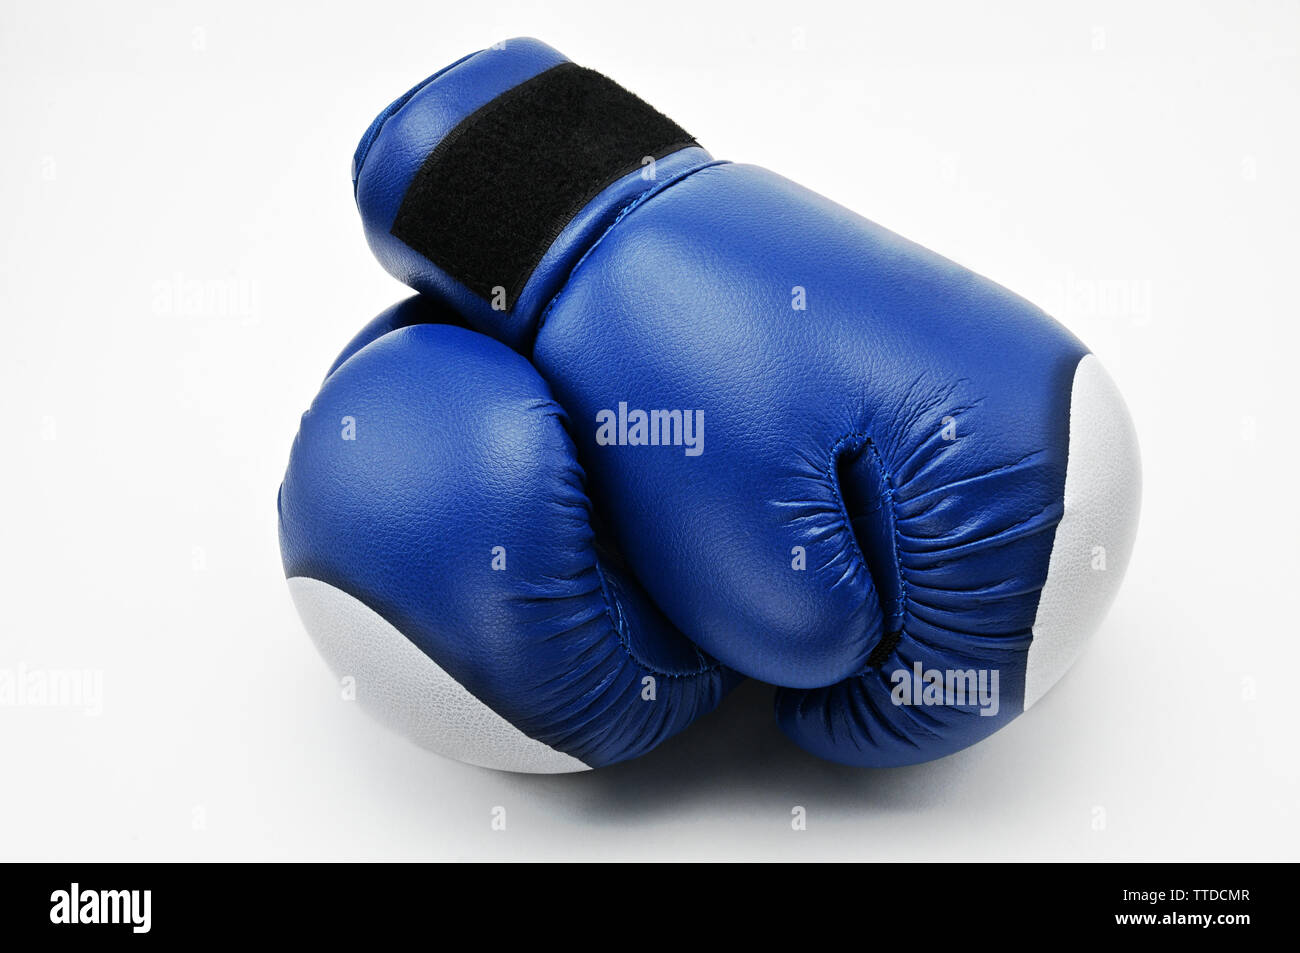 Blue boxing gloves on an isolated white background.Mitten - Stock Image